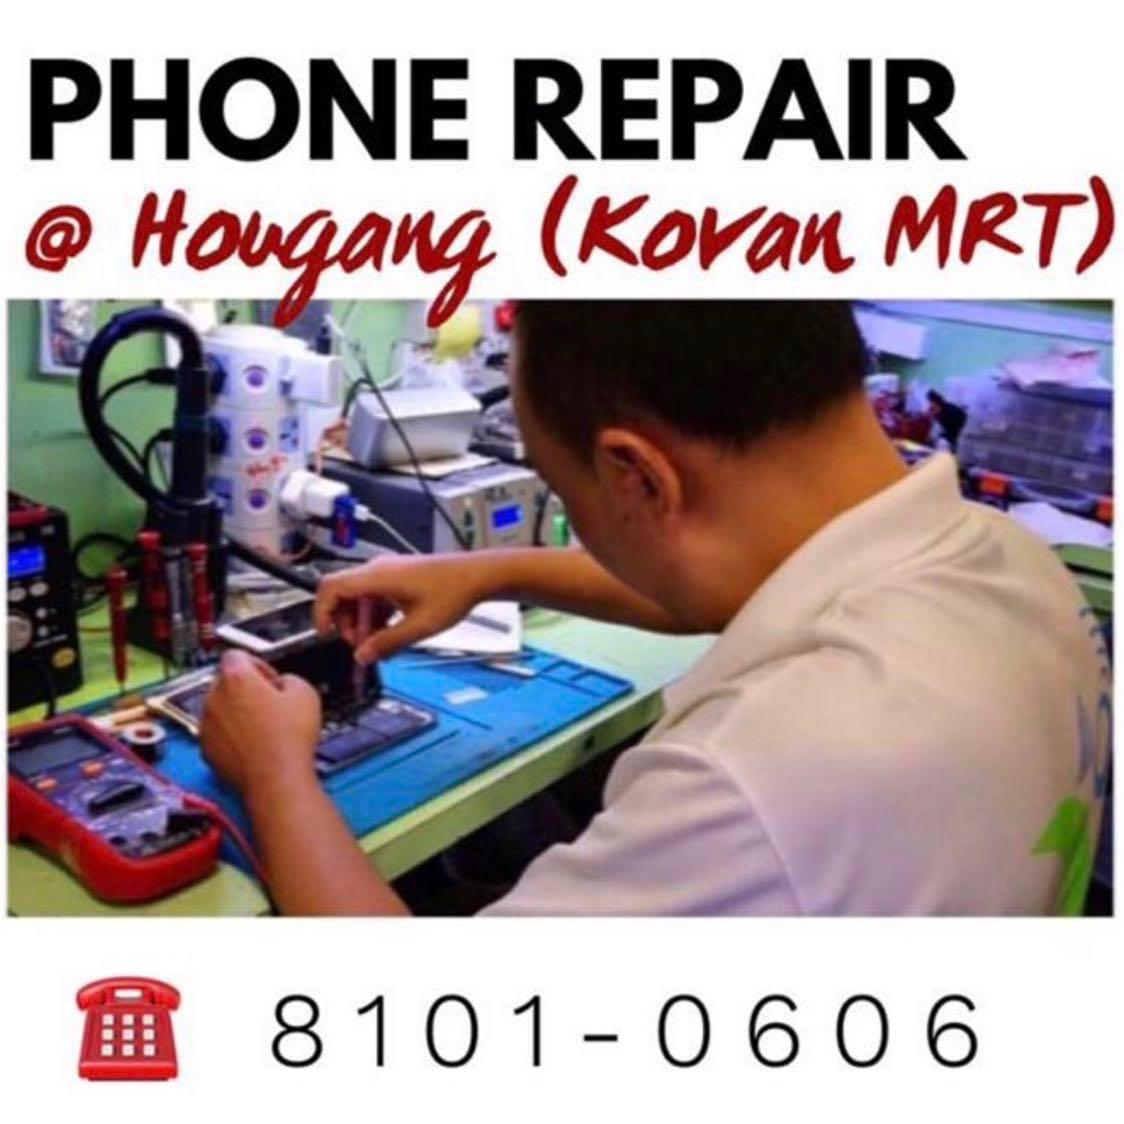 iPhone Repair, iPhone Battery, Screen Repair, Phone Repair